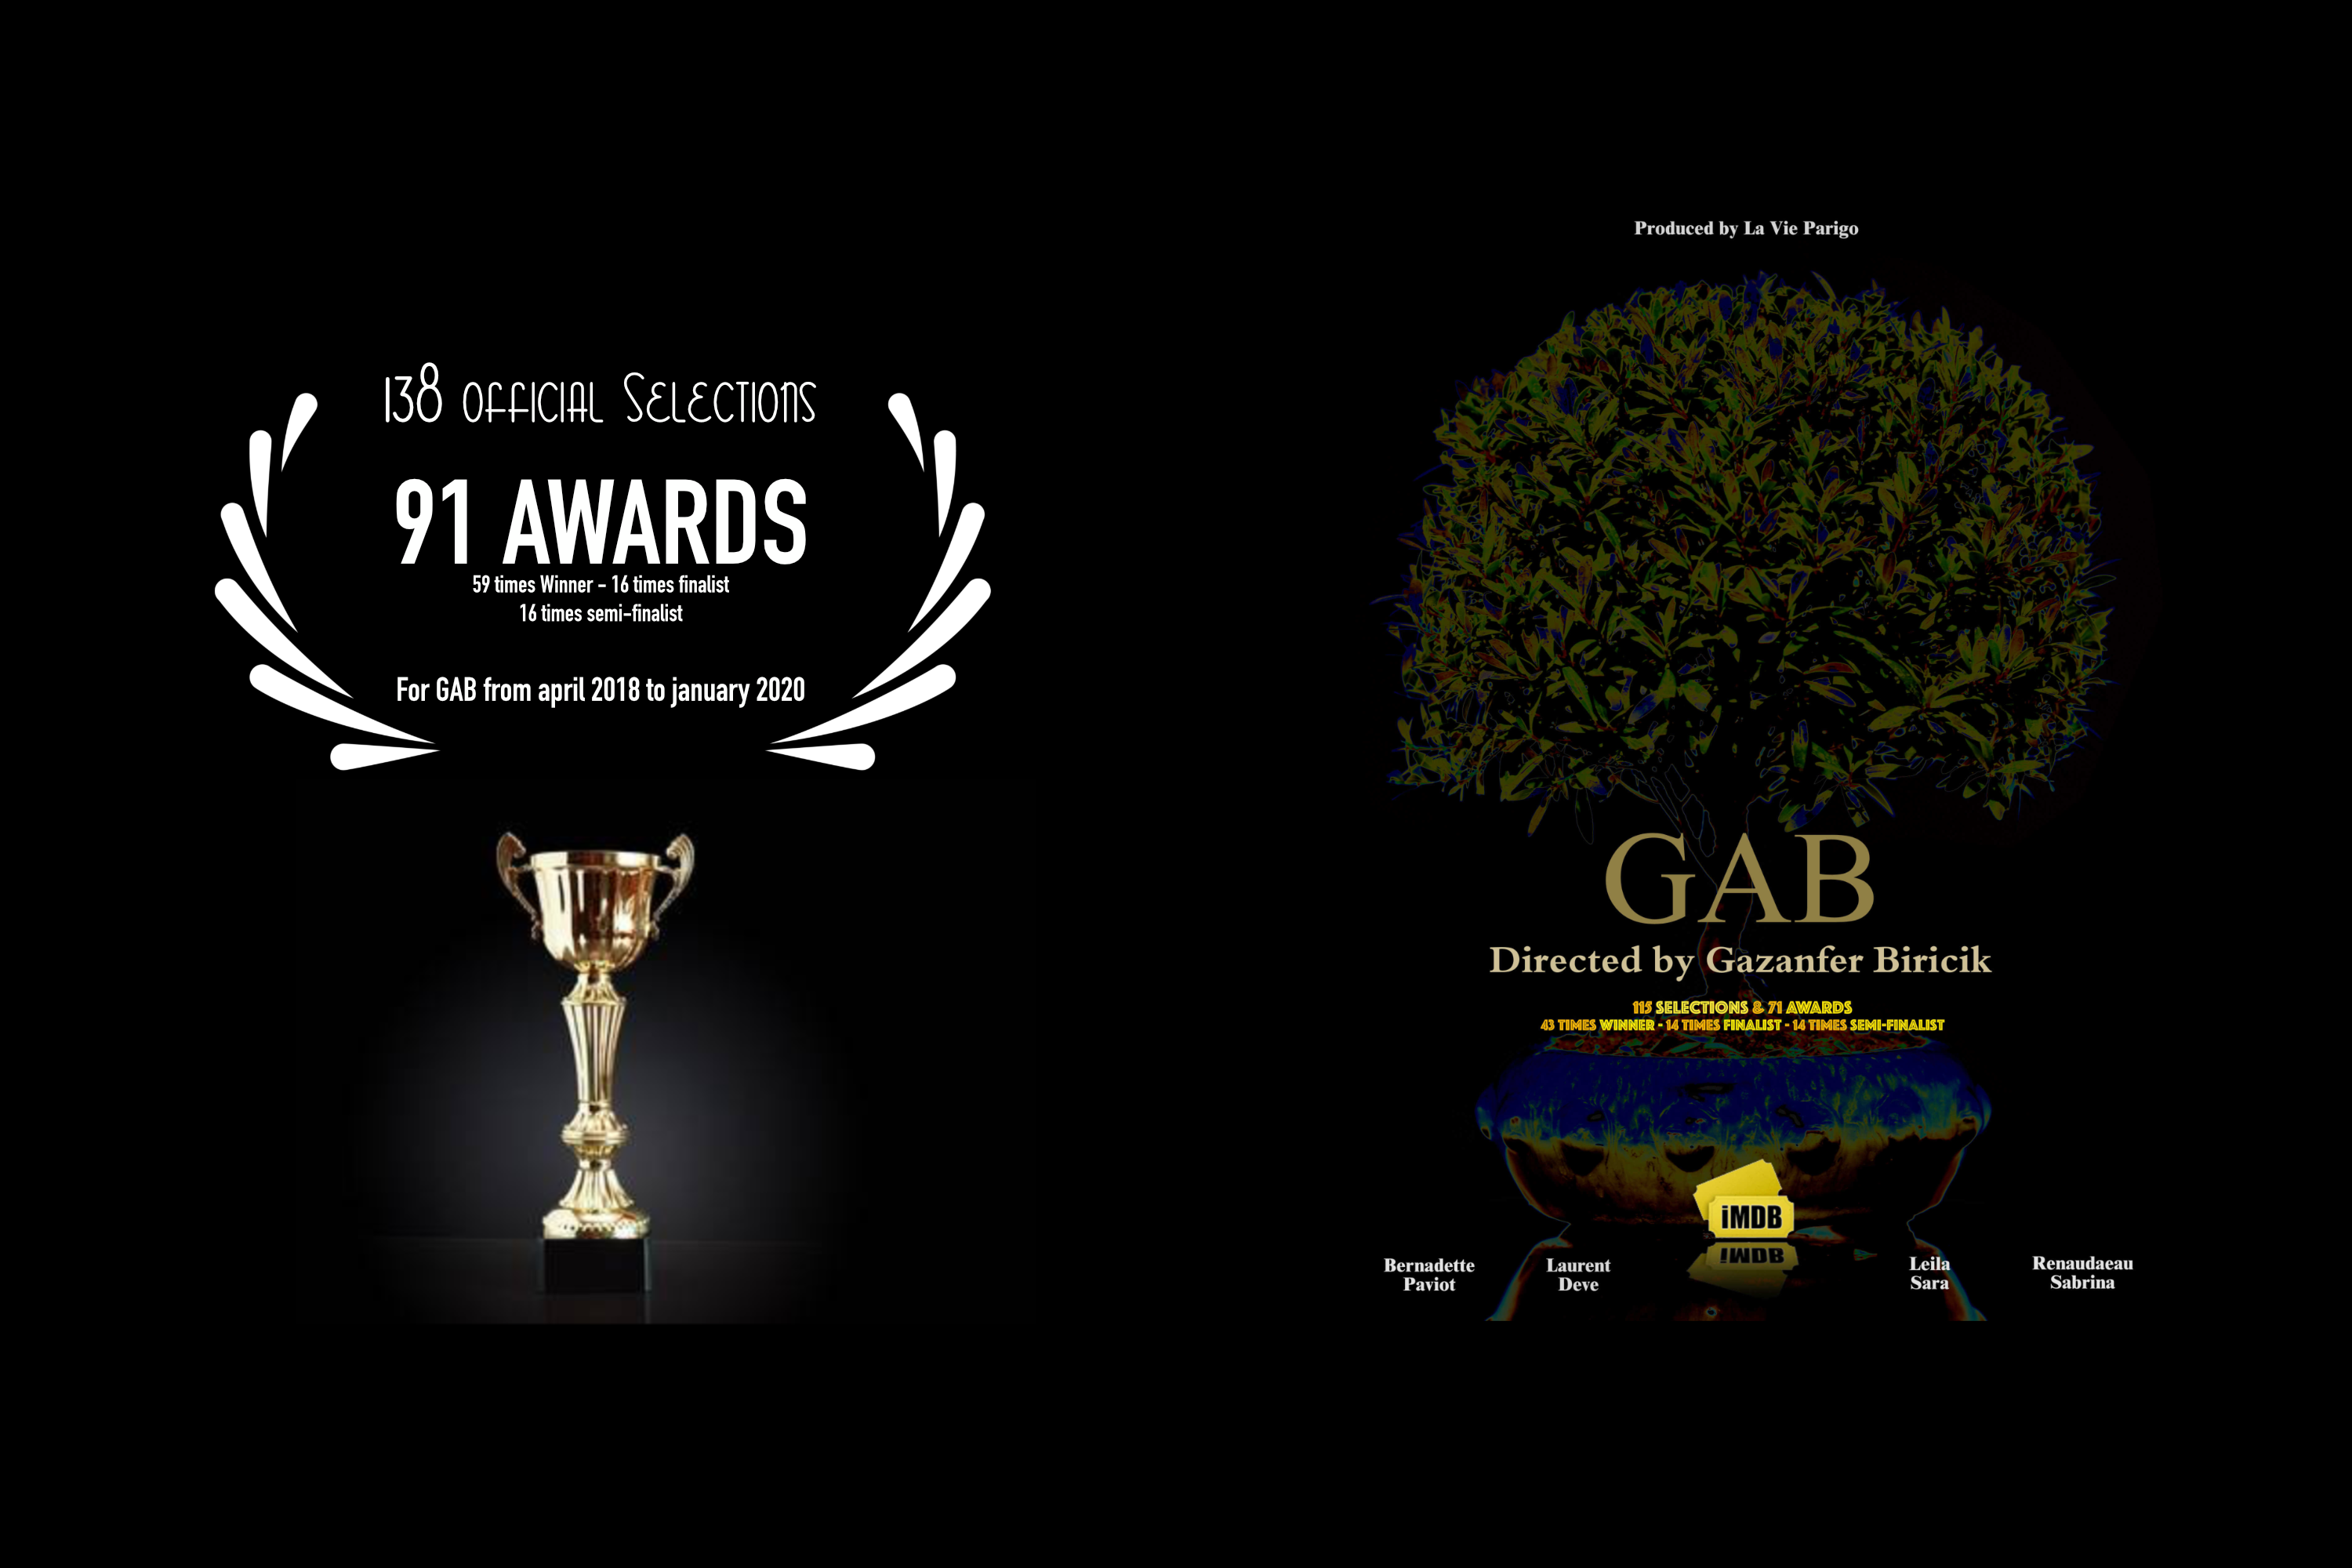 GAB it's 91 awards & 138 Selections